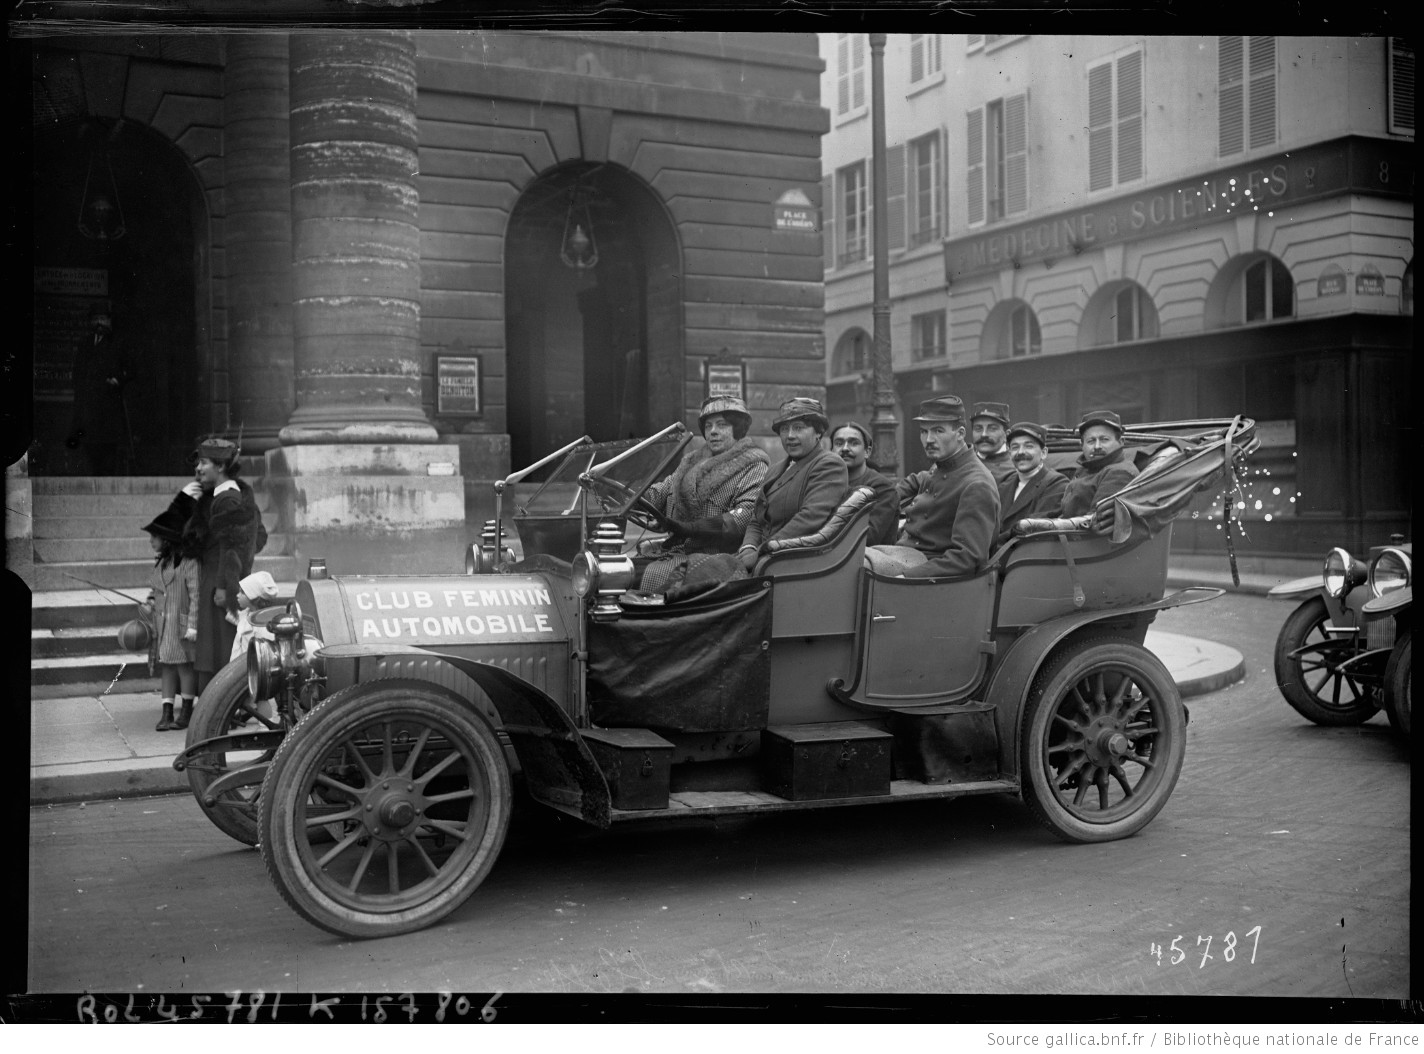 Paris in #WW1: Women from the 'Club Feminine Automobile' take wounded French Poilus out for a drive at the théâtre de l'Odéon in Paris, 1915. #1GM https://t.co/ePEqT3010T